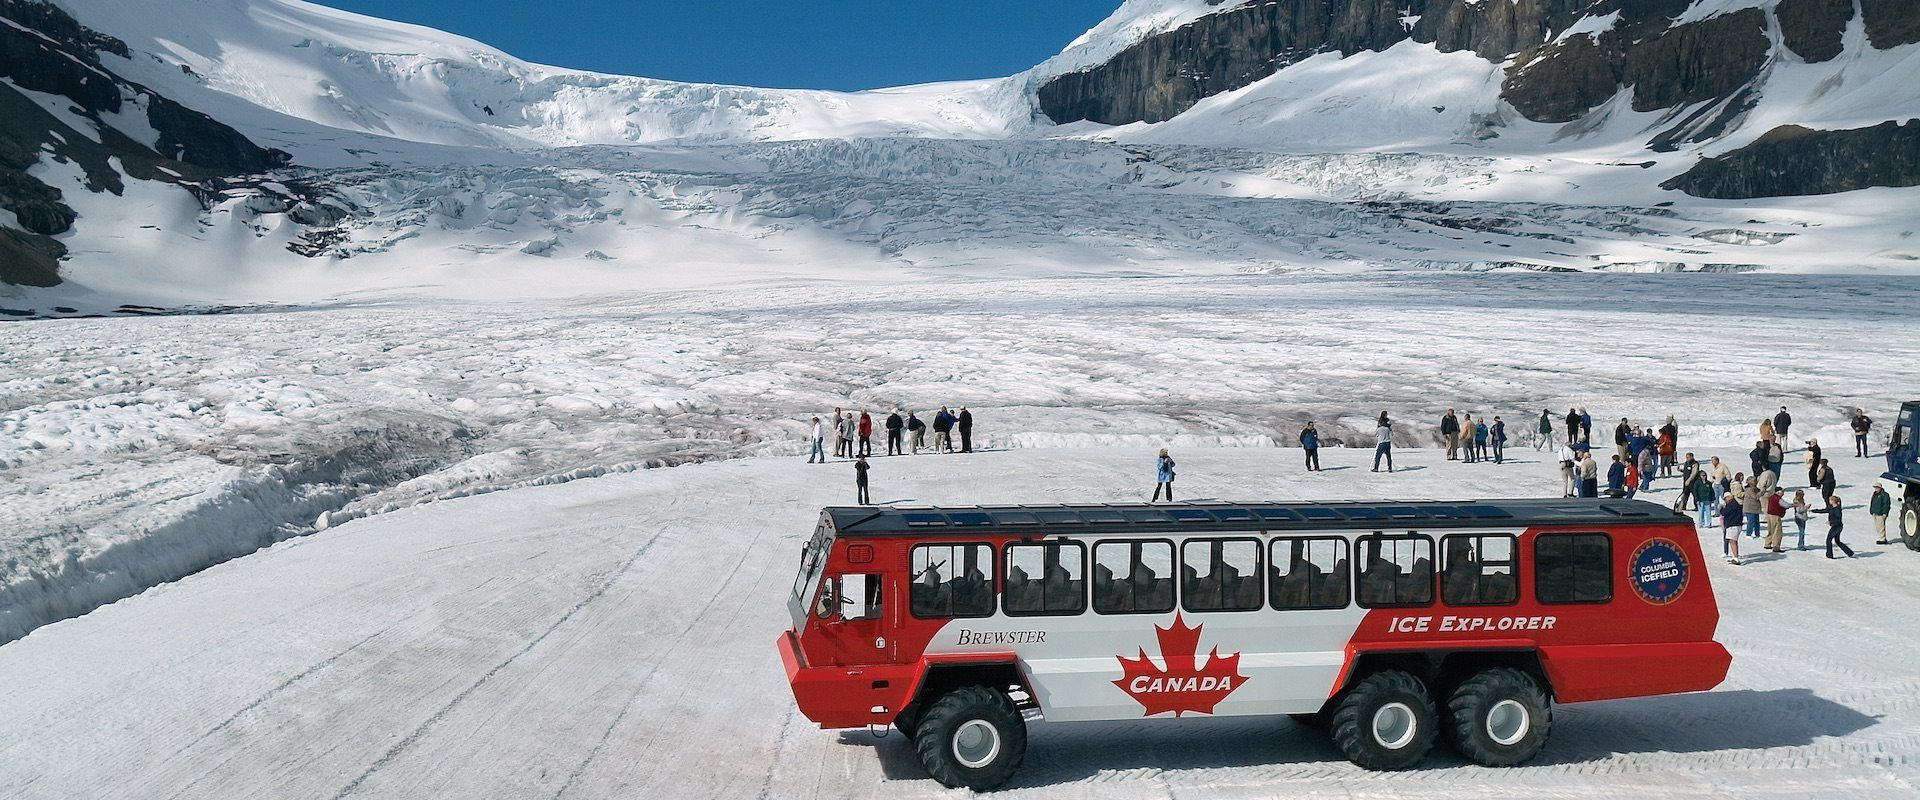 Columbia Icefields Parkway Tour | Discover Banff Tours | Banff, How to take  photos, Scenic drive